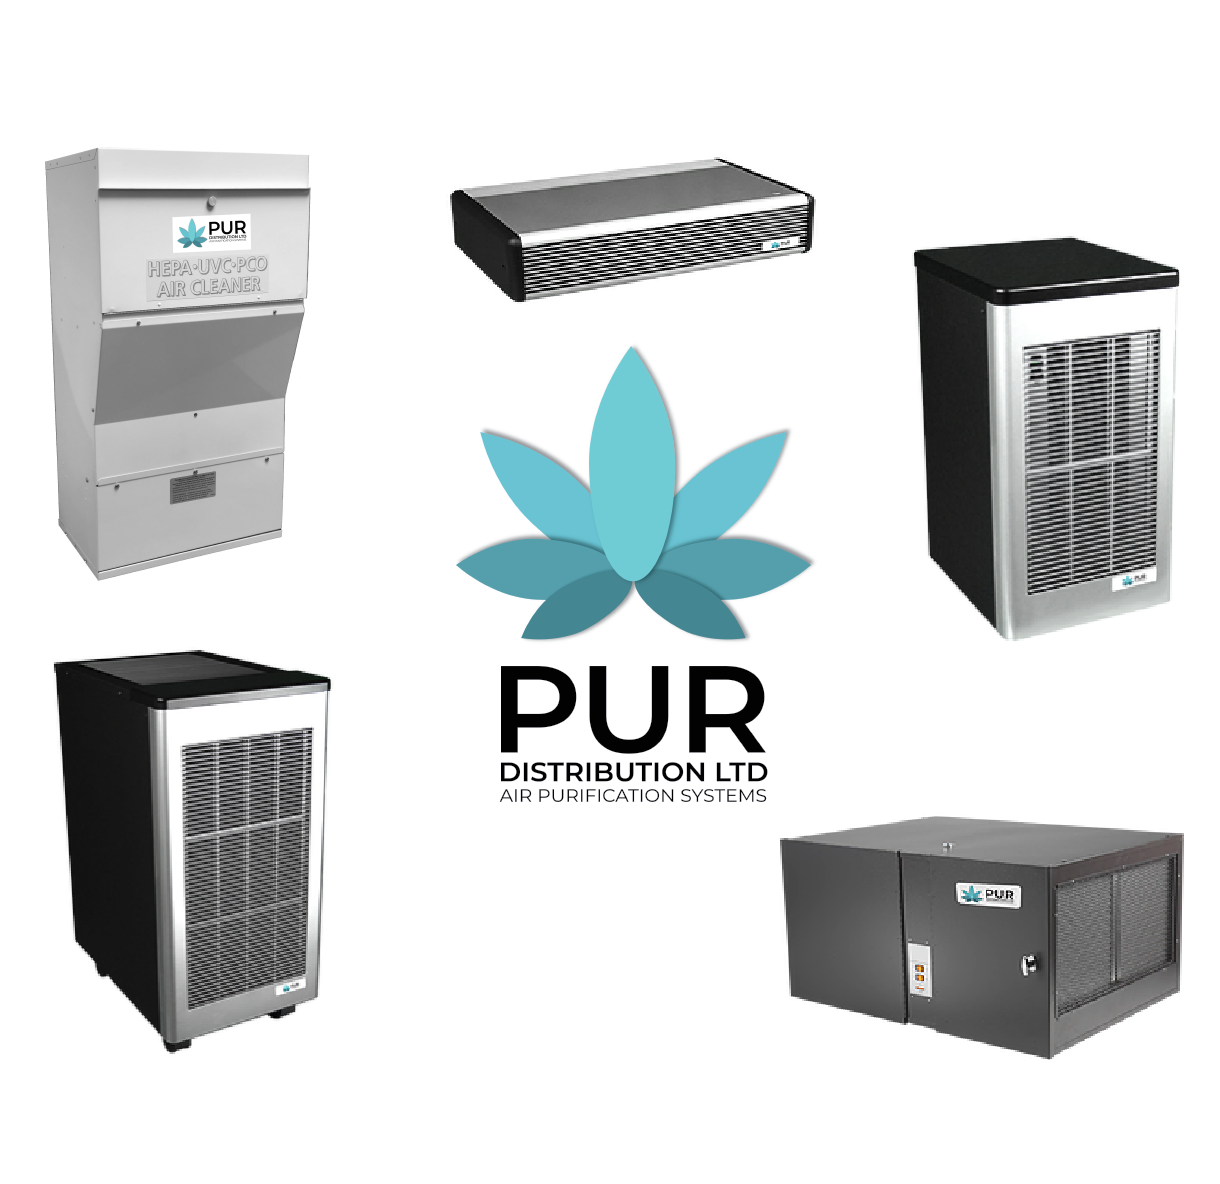 Pur equipment group